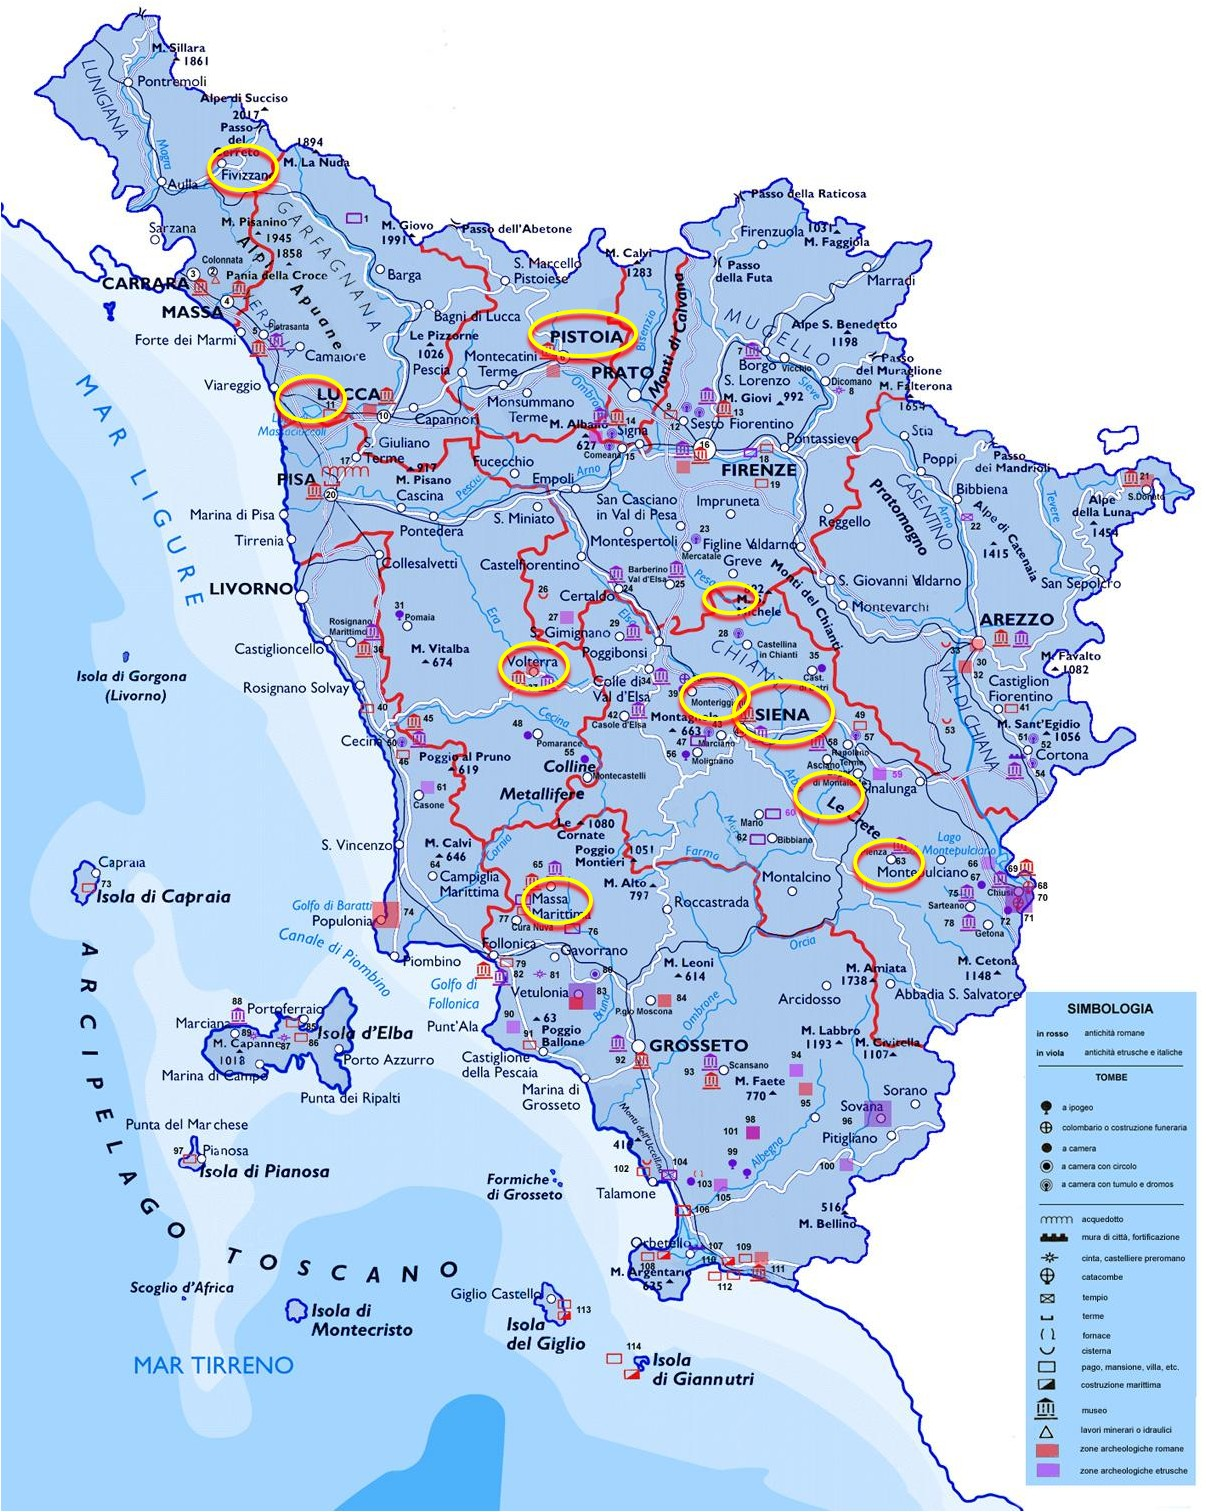 florence italy tourist map with Kaart Toscane Met Evenementen En Festivals Zomer 2012 on Messina Sightseeing Map further Gedetailleerde kaarten besides Umbria italy map together with Ecolmap also Alberobello.